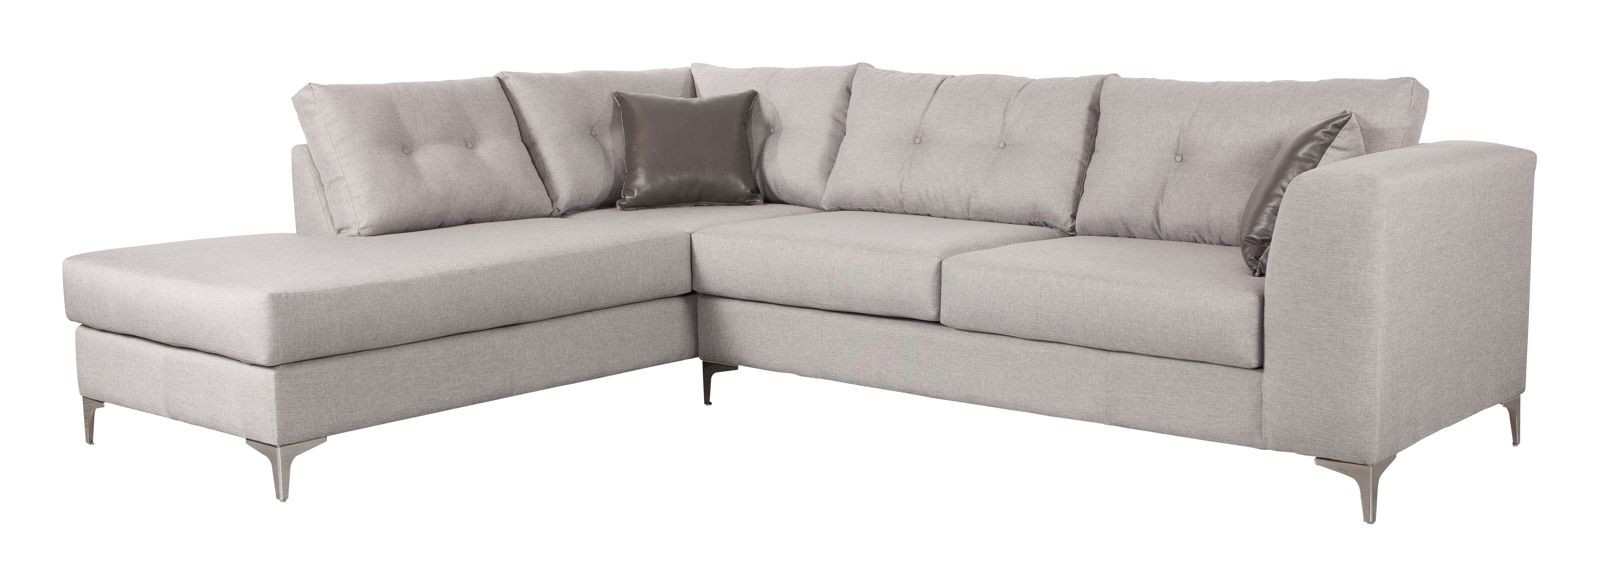 Most Popular Memphis Sectional Sofas In Memphis Sectional Sofazuo Modern (View 4 of 20)